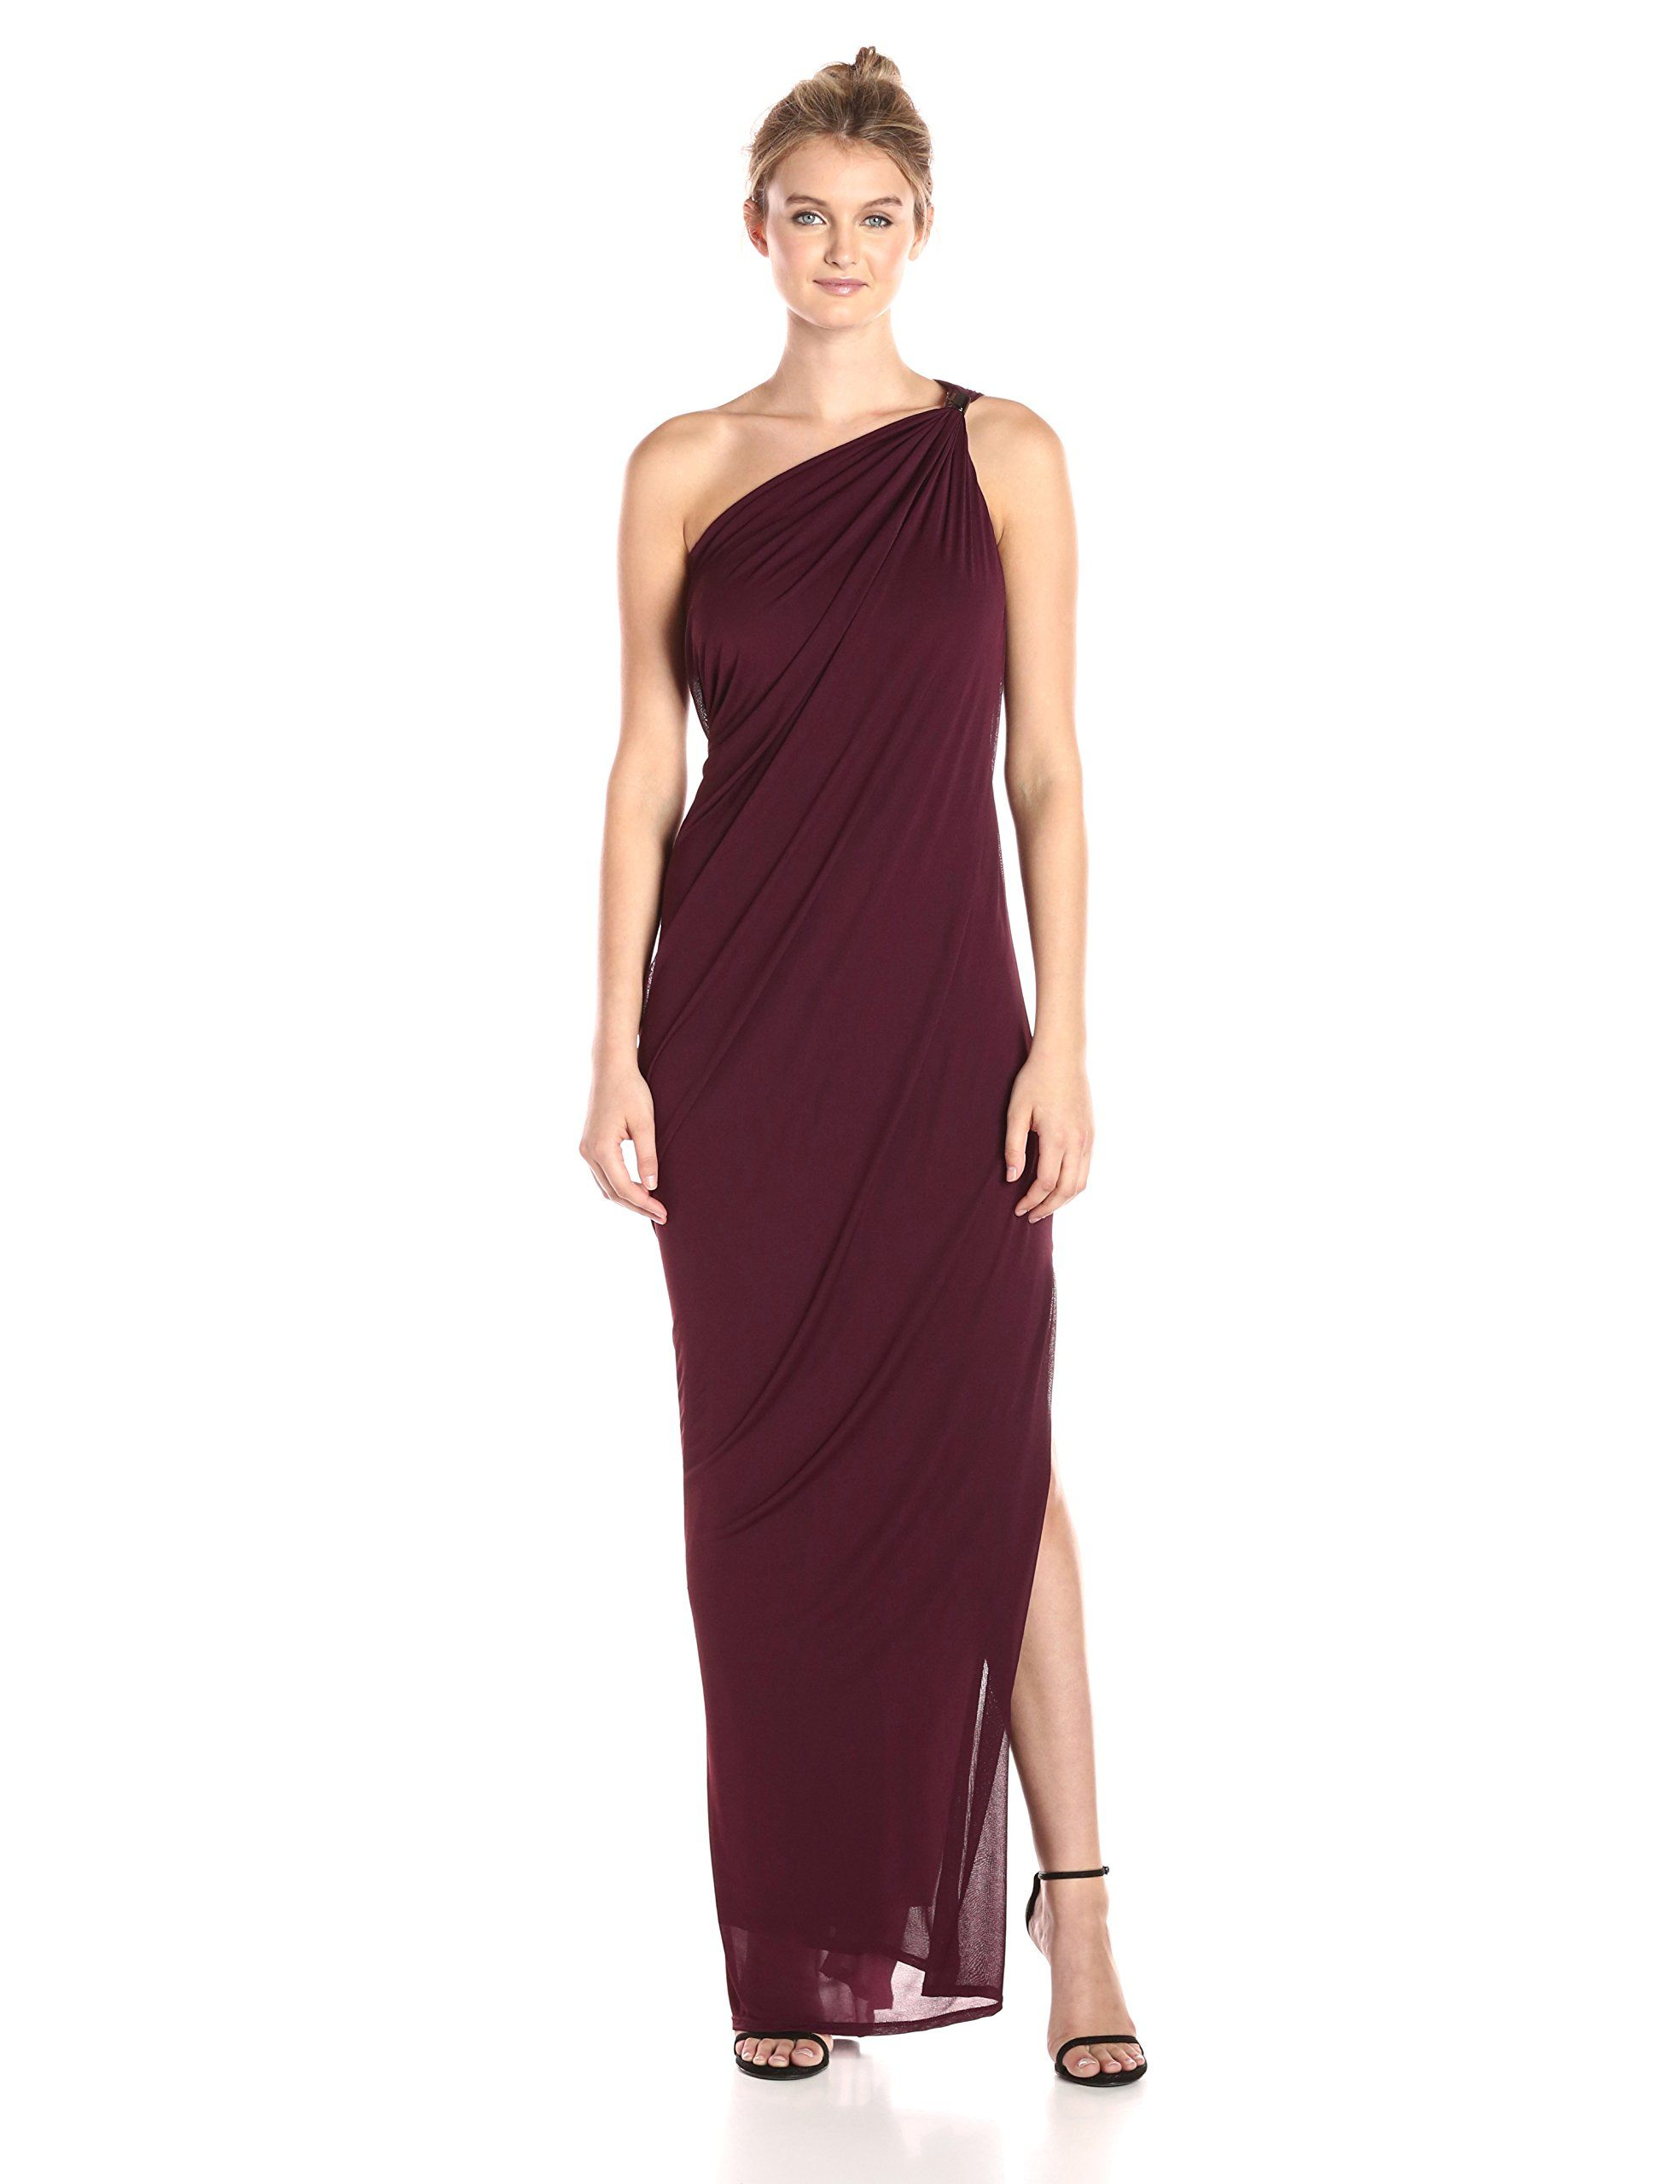 Halston heritage womenus one shoulder draped jersey gown with slit